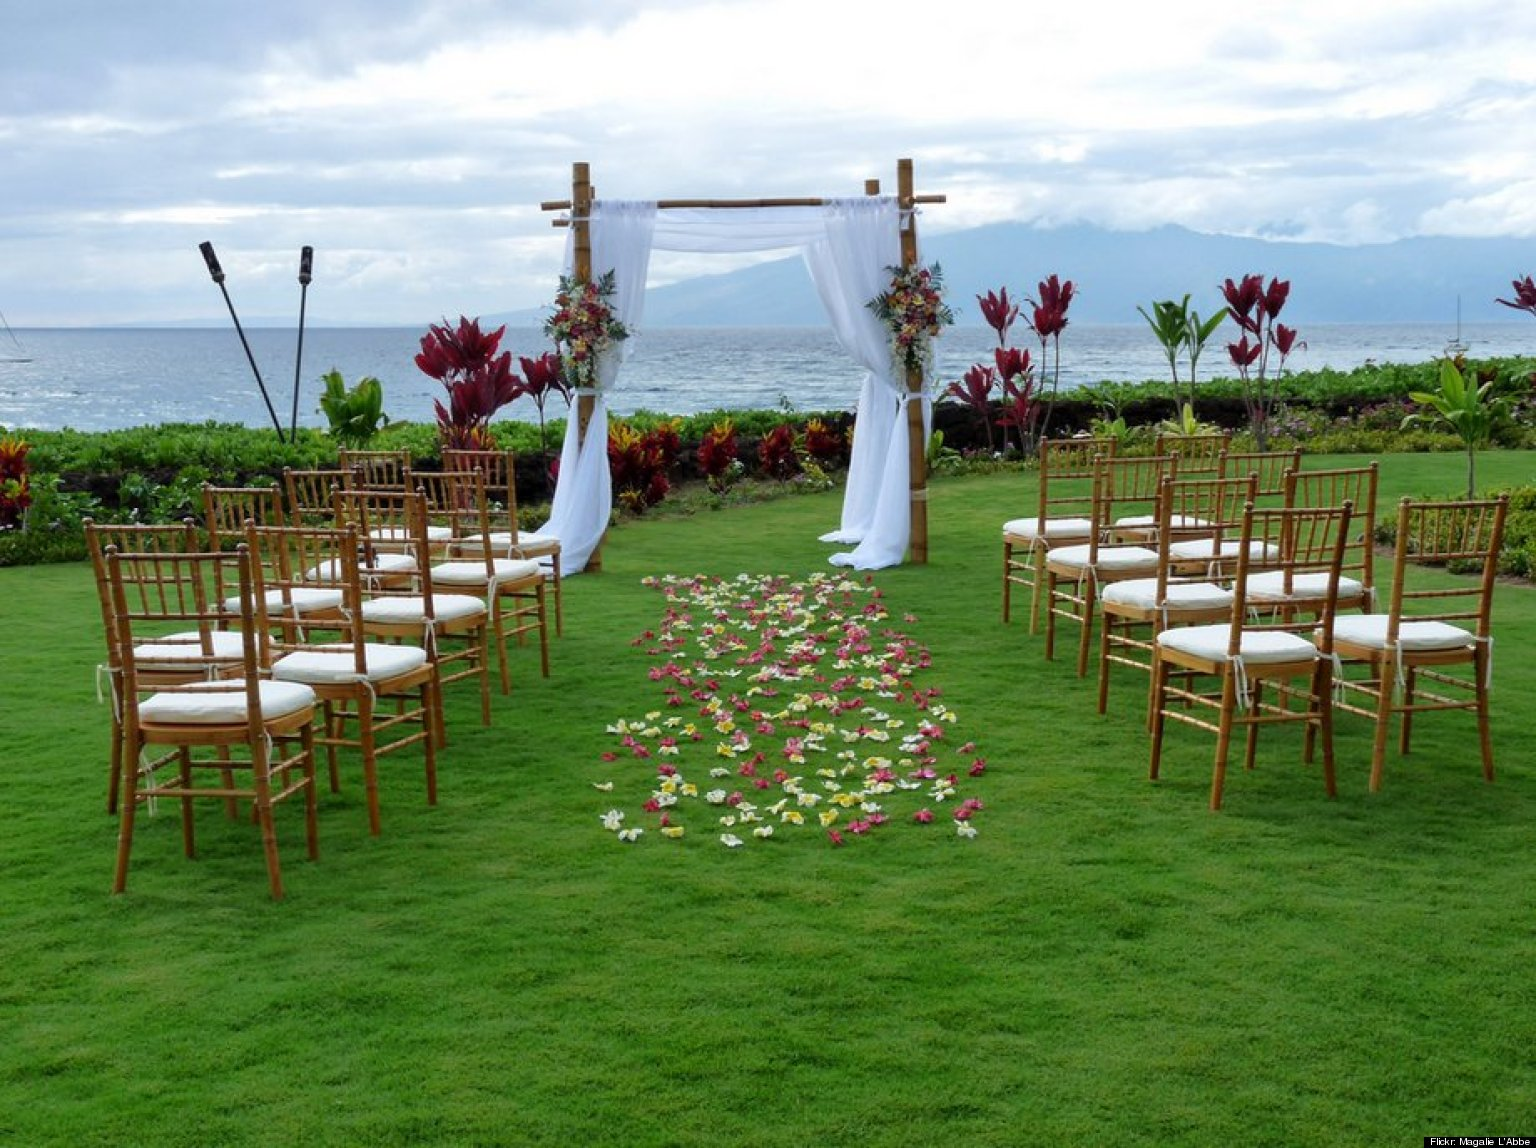 Destination weddings 10 relaxing resorts for a stress free destination weddings 10 relaxing resorts for a stress free celebration huffpost junglespirit Images